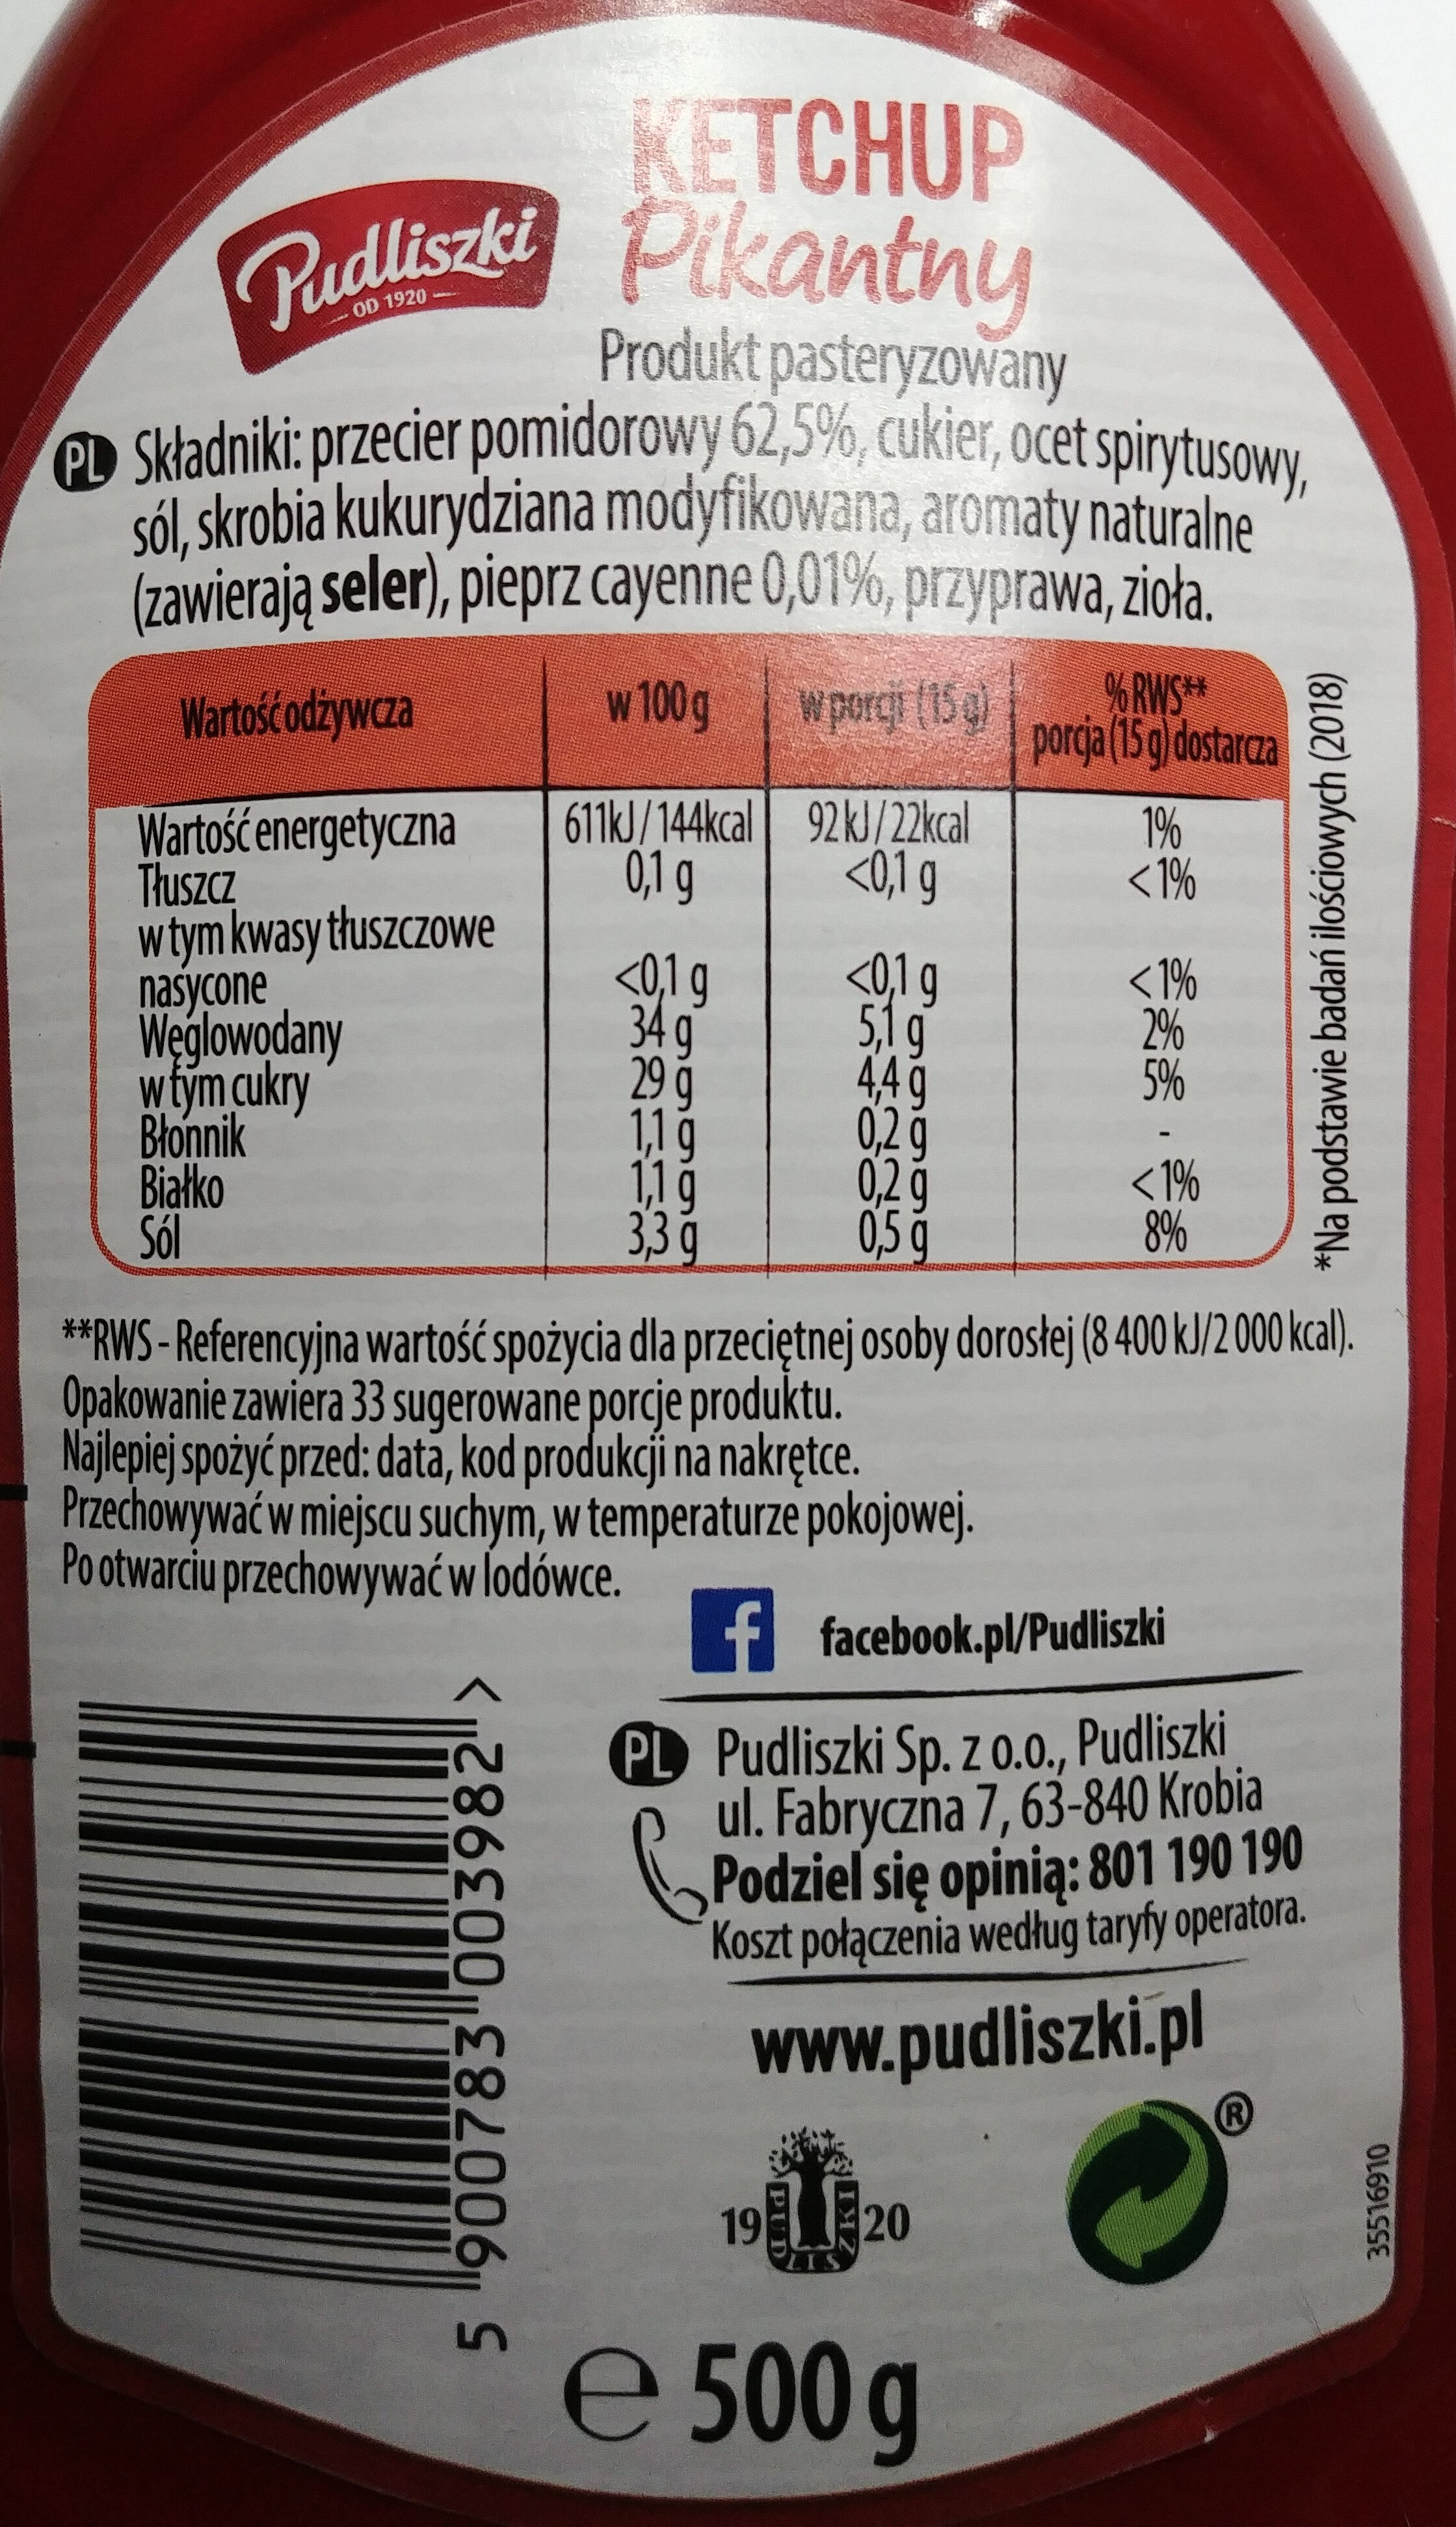 Ketchup pikantny - Informations nutritionnelles